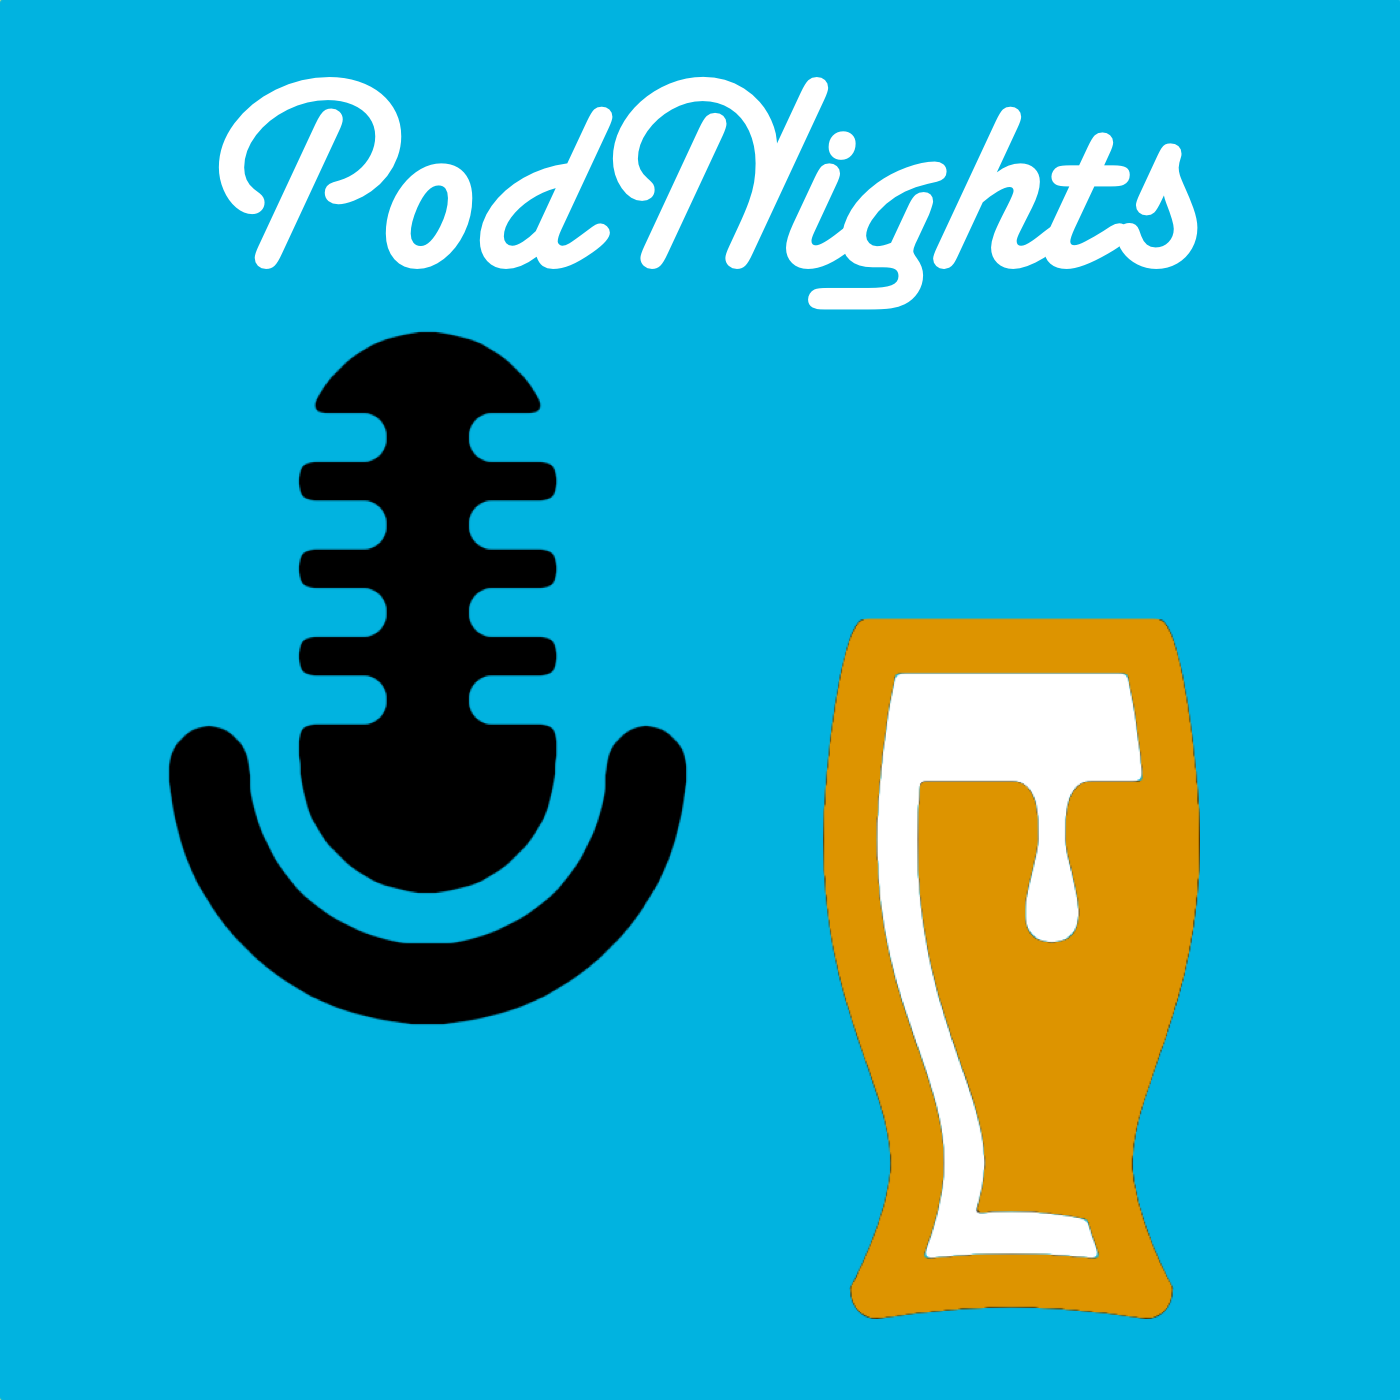 Logo de Podcast de PodNights, las noches de podcasting